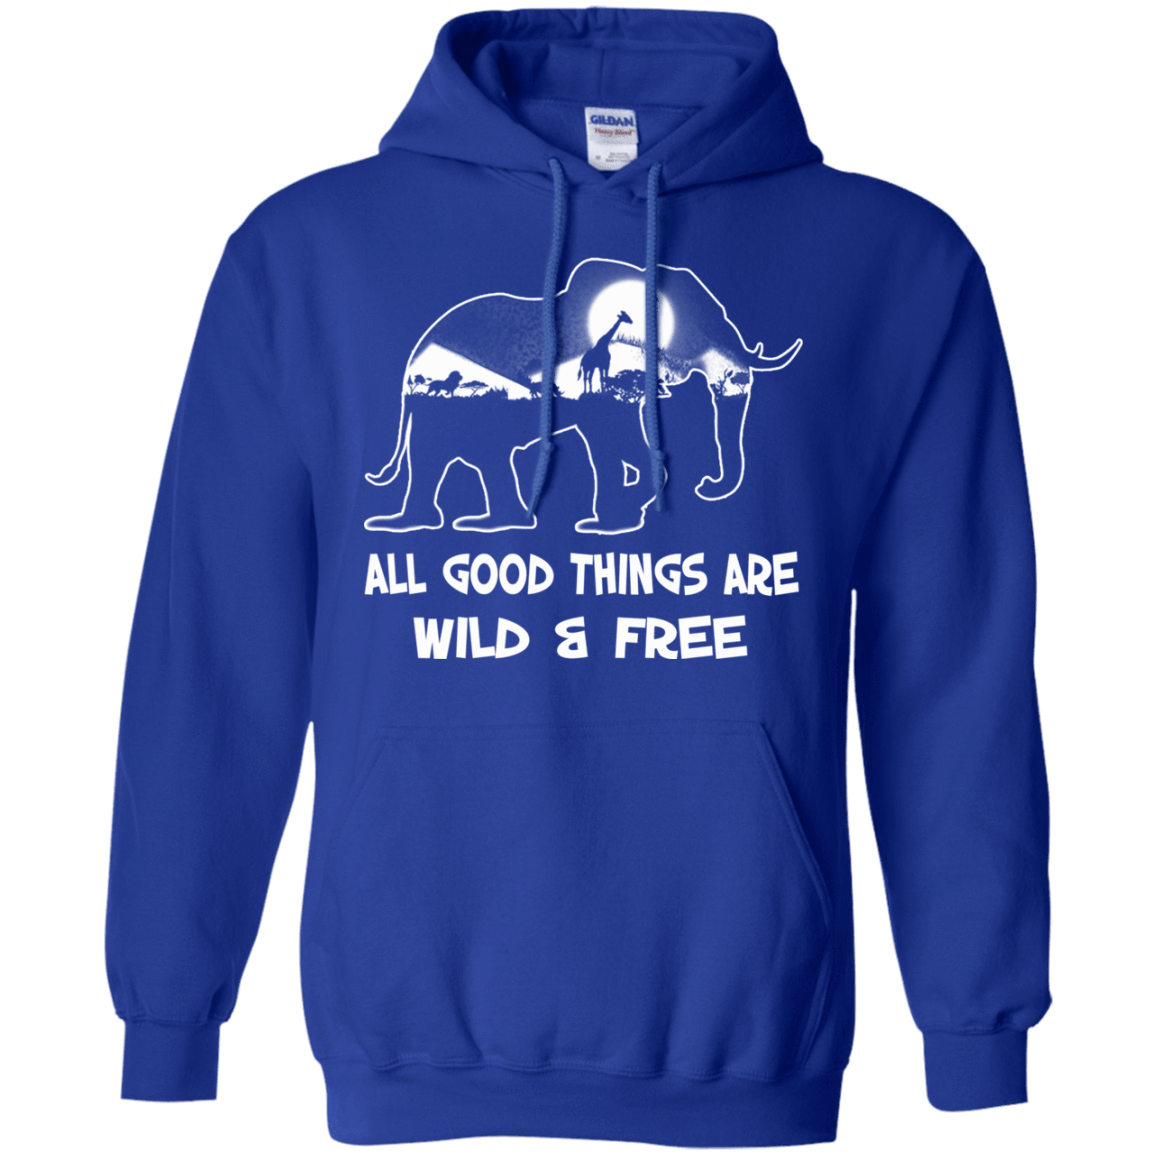 All Good Things Are Wild & Free 541-4765-72772260-23175 - Tee Ript